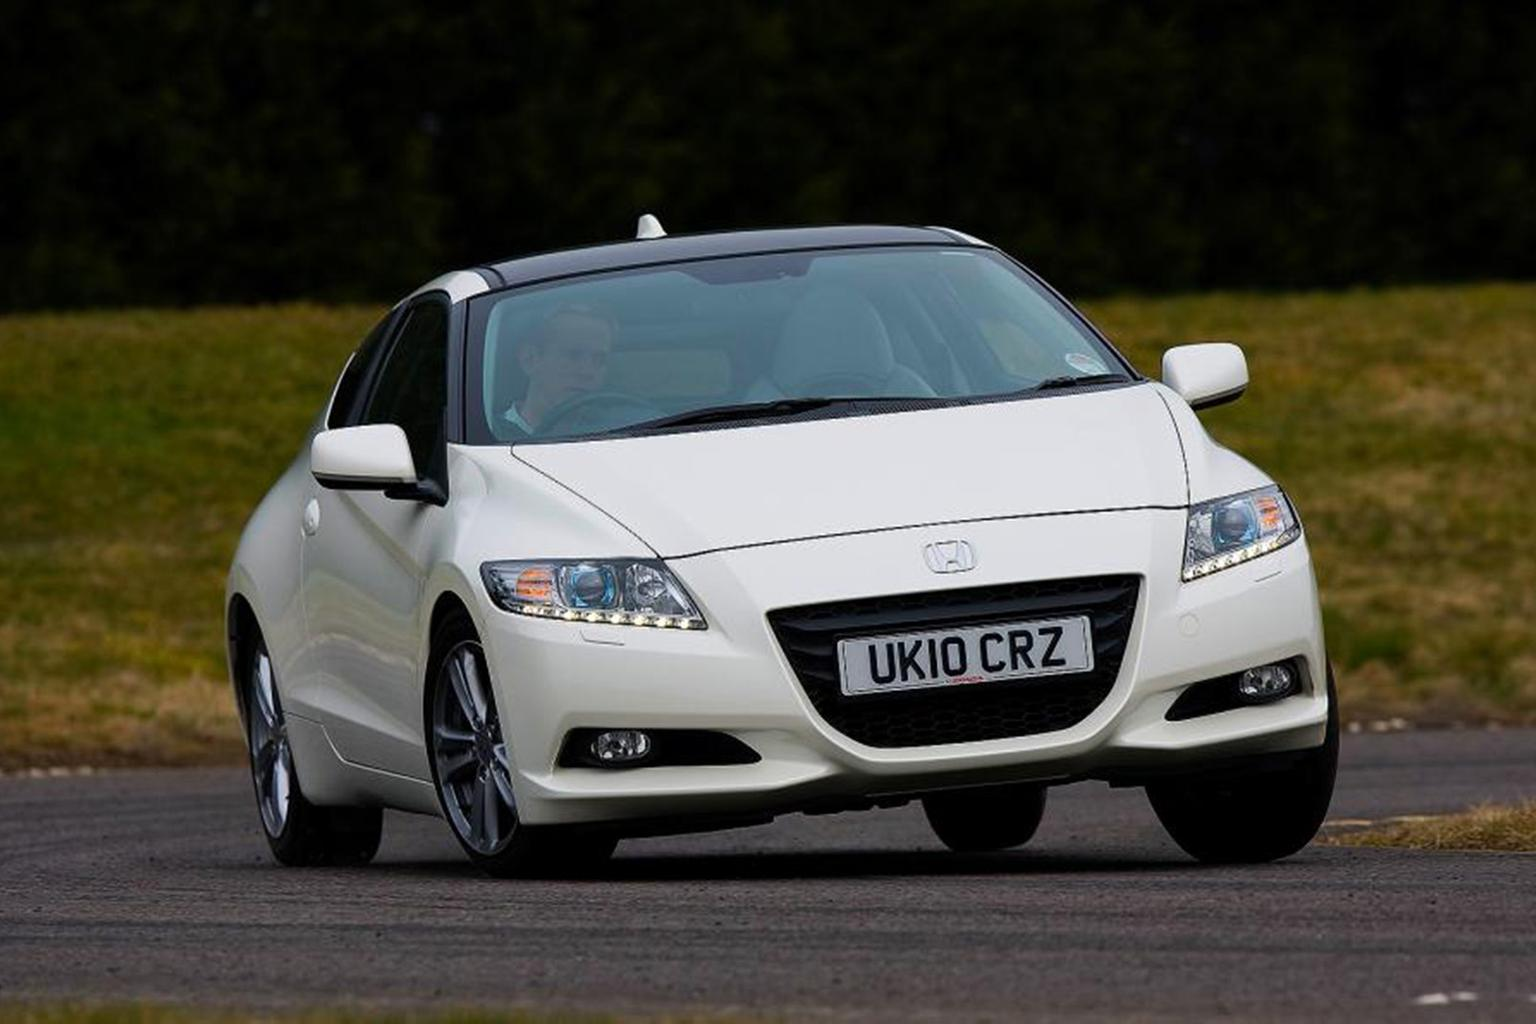 Best used coupes for less than £5000 (and the one to avoid)